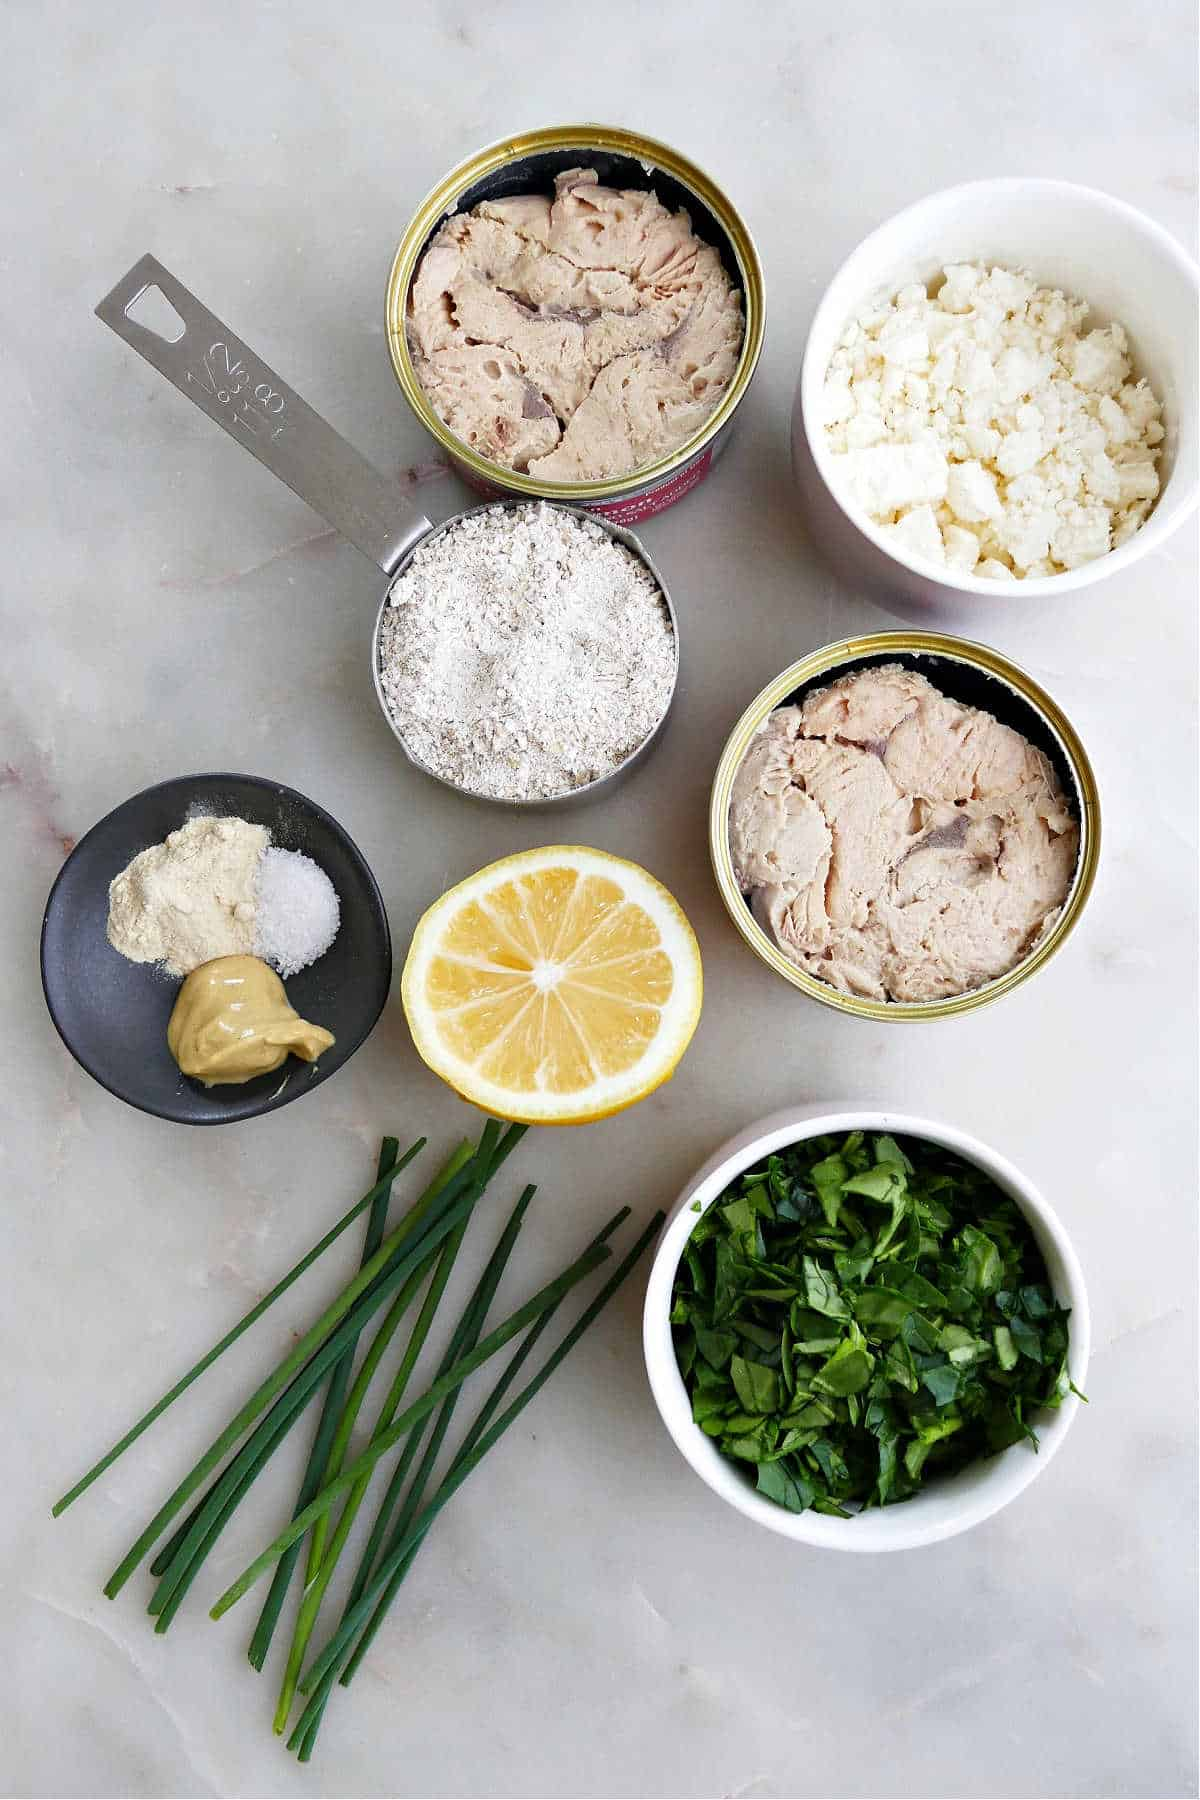 canned salmon, feta cheese, ground oats, lemon, seasonings, and spinach on a counter